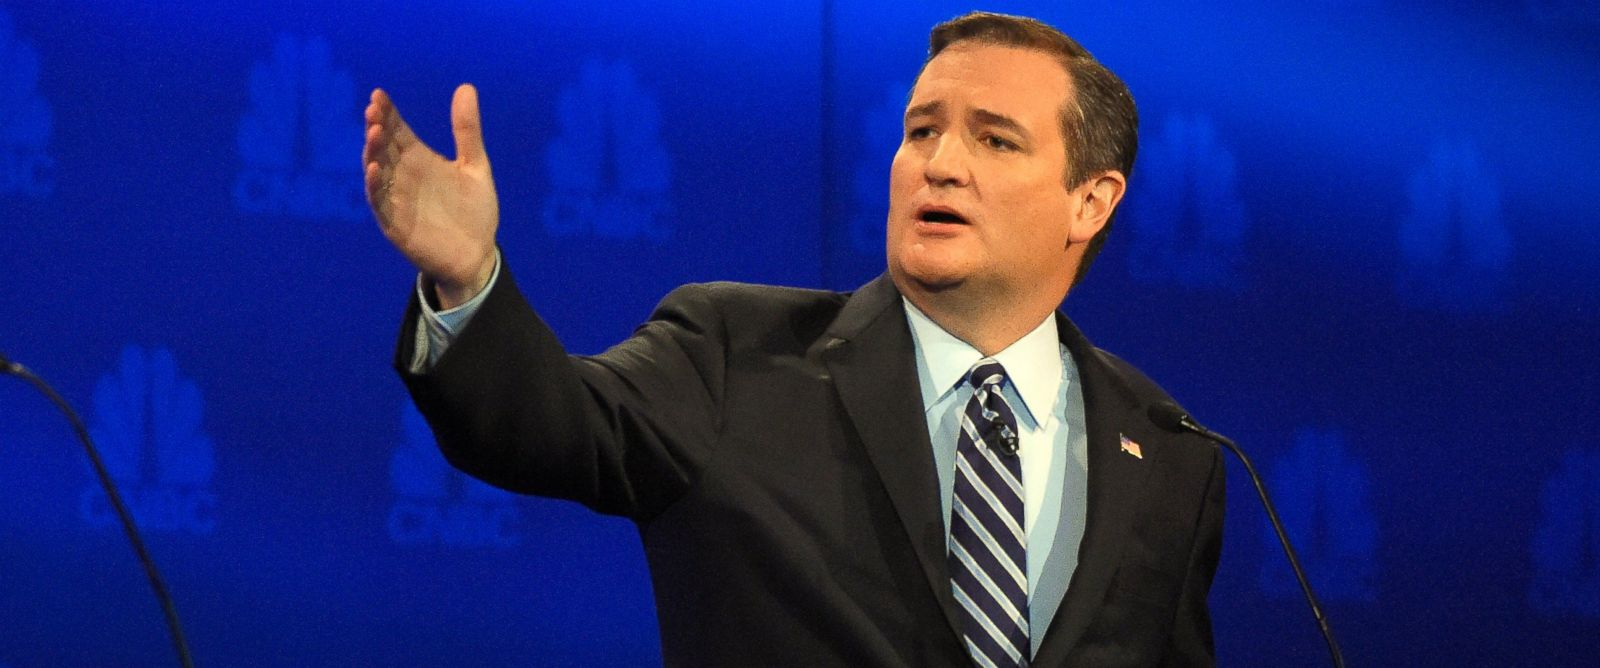 PHOTO: Ted Cruz talks about the mainstream media during the CNBC Republican presidential debate at the University of Colorado, Oct. 28, 2015, in Boulder, Colo.